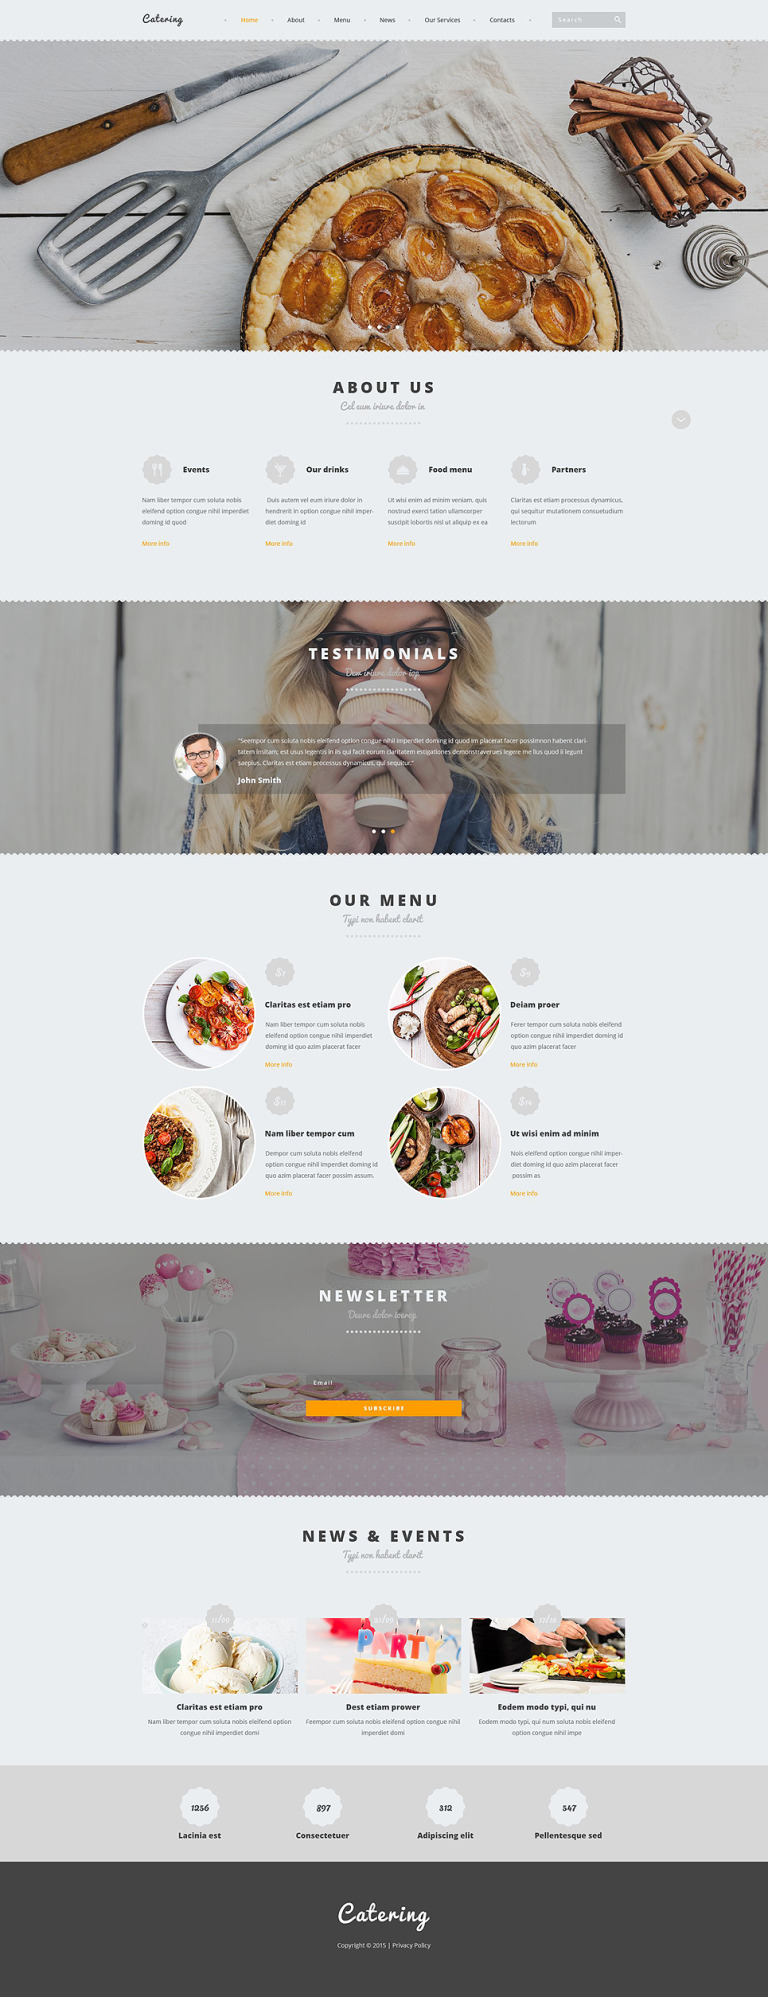 Catering Joomla Template New Screenshots BIG